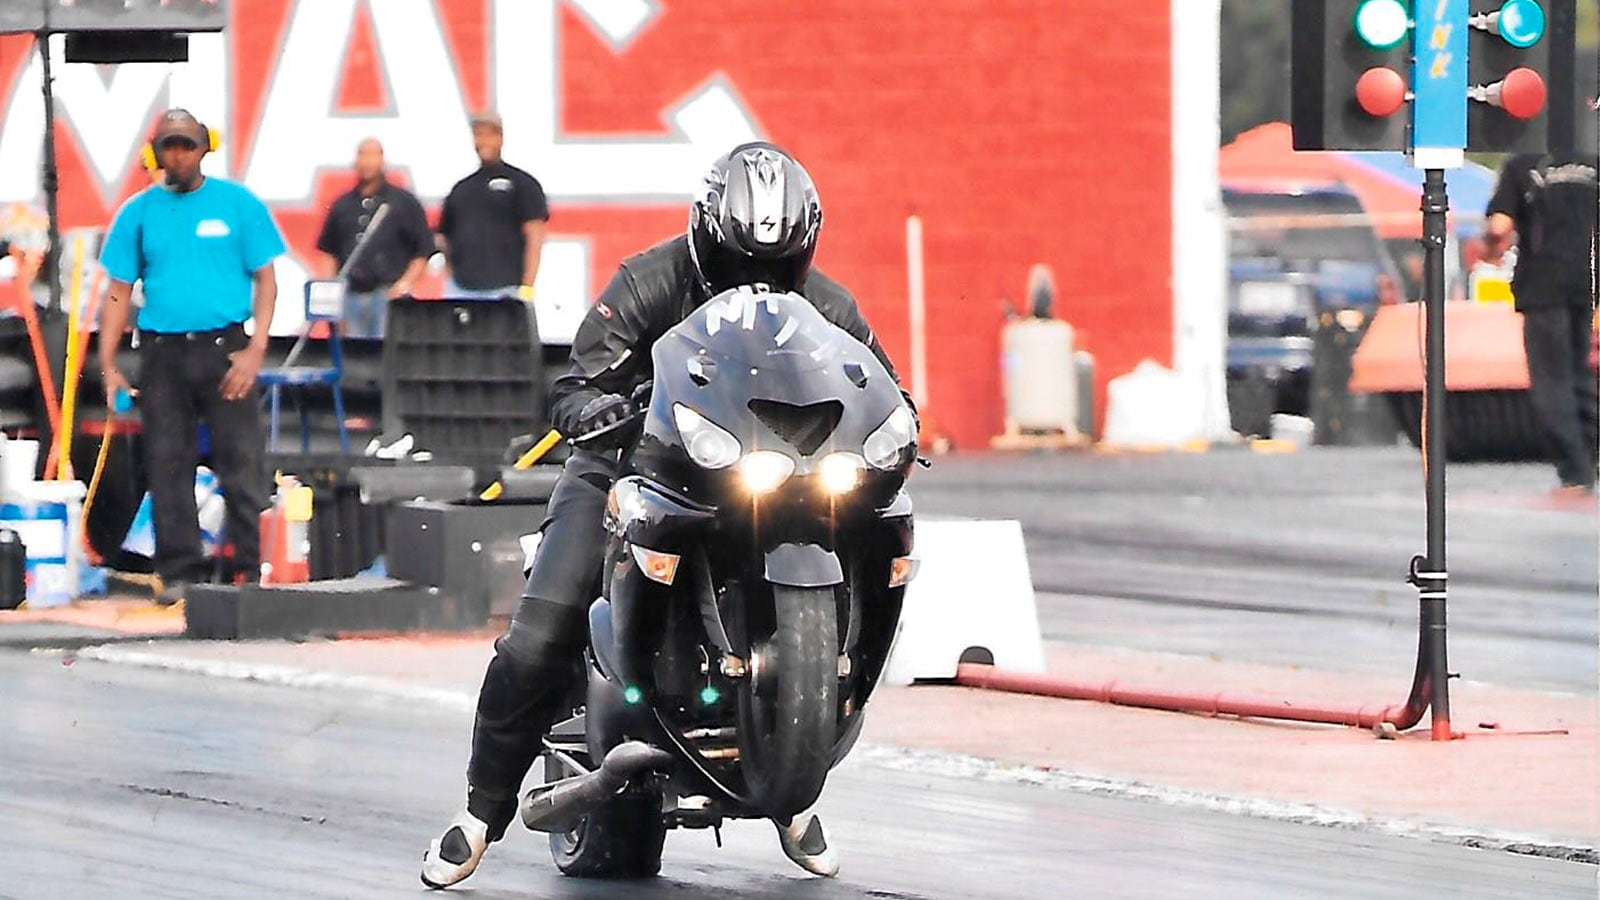 Wayne Sugg takes off from the starting line on his motorcycle in a drag race.